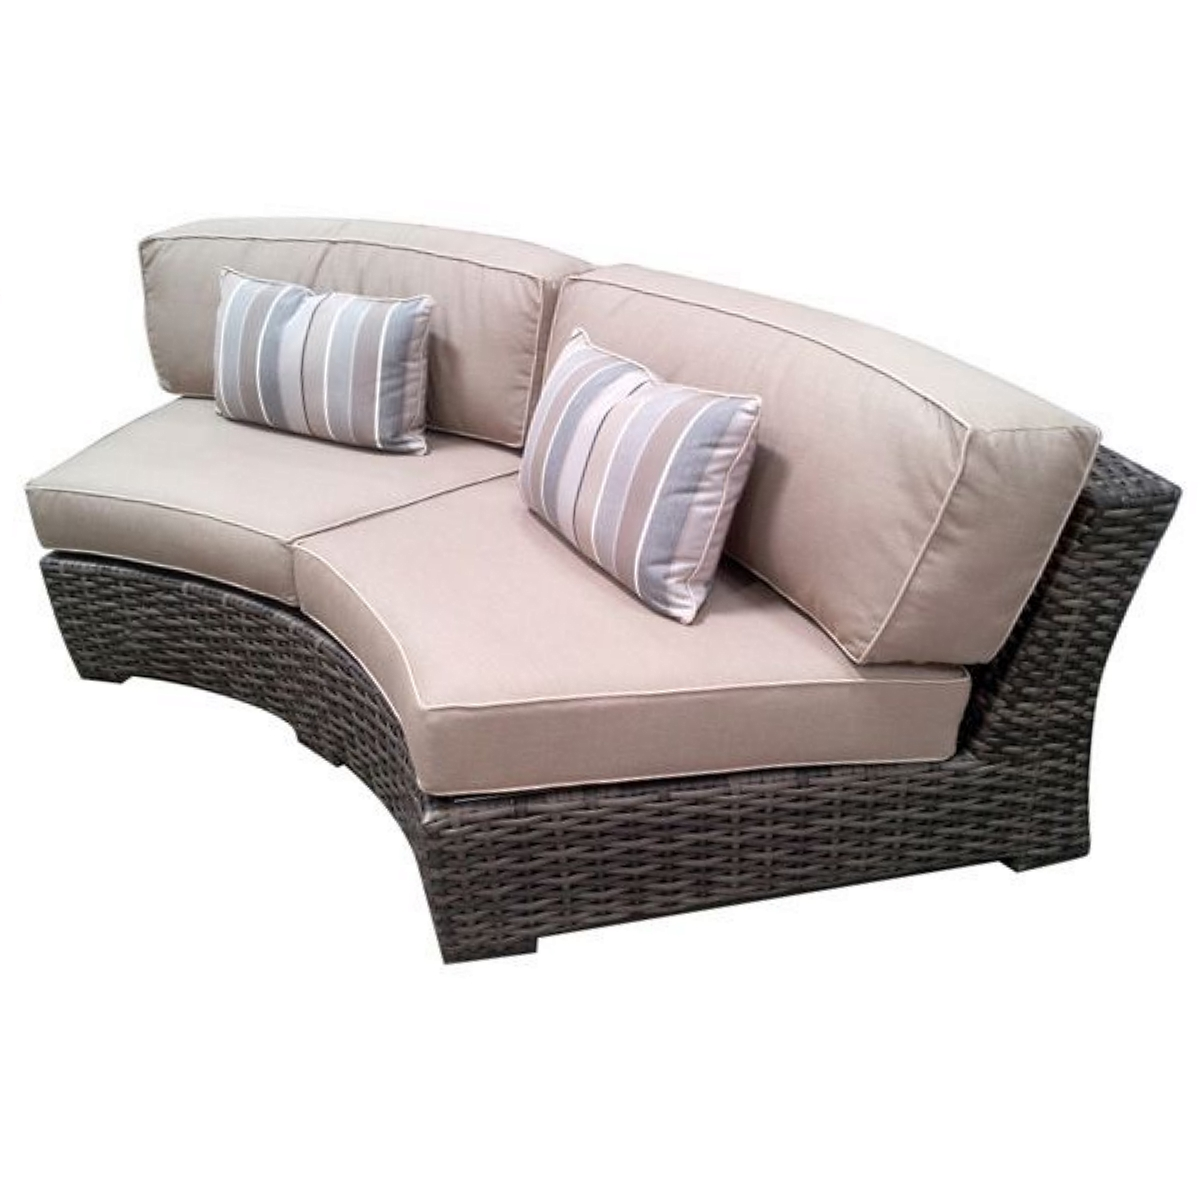 Homefurniture Collectionsconcord Collectionconcord Outdoor Patio Furniture Curved Sofa